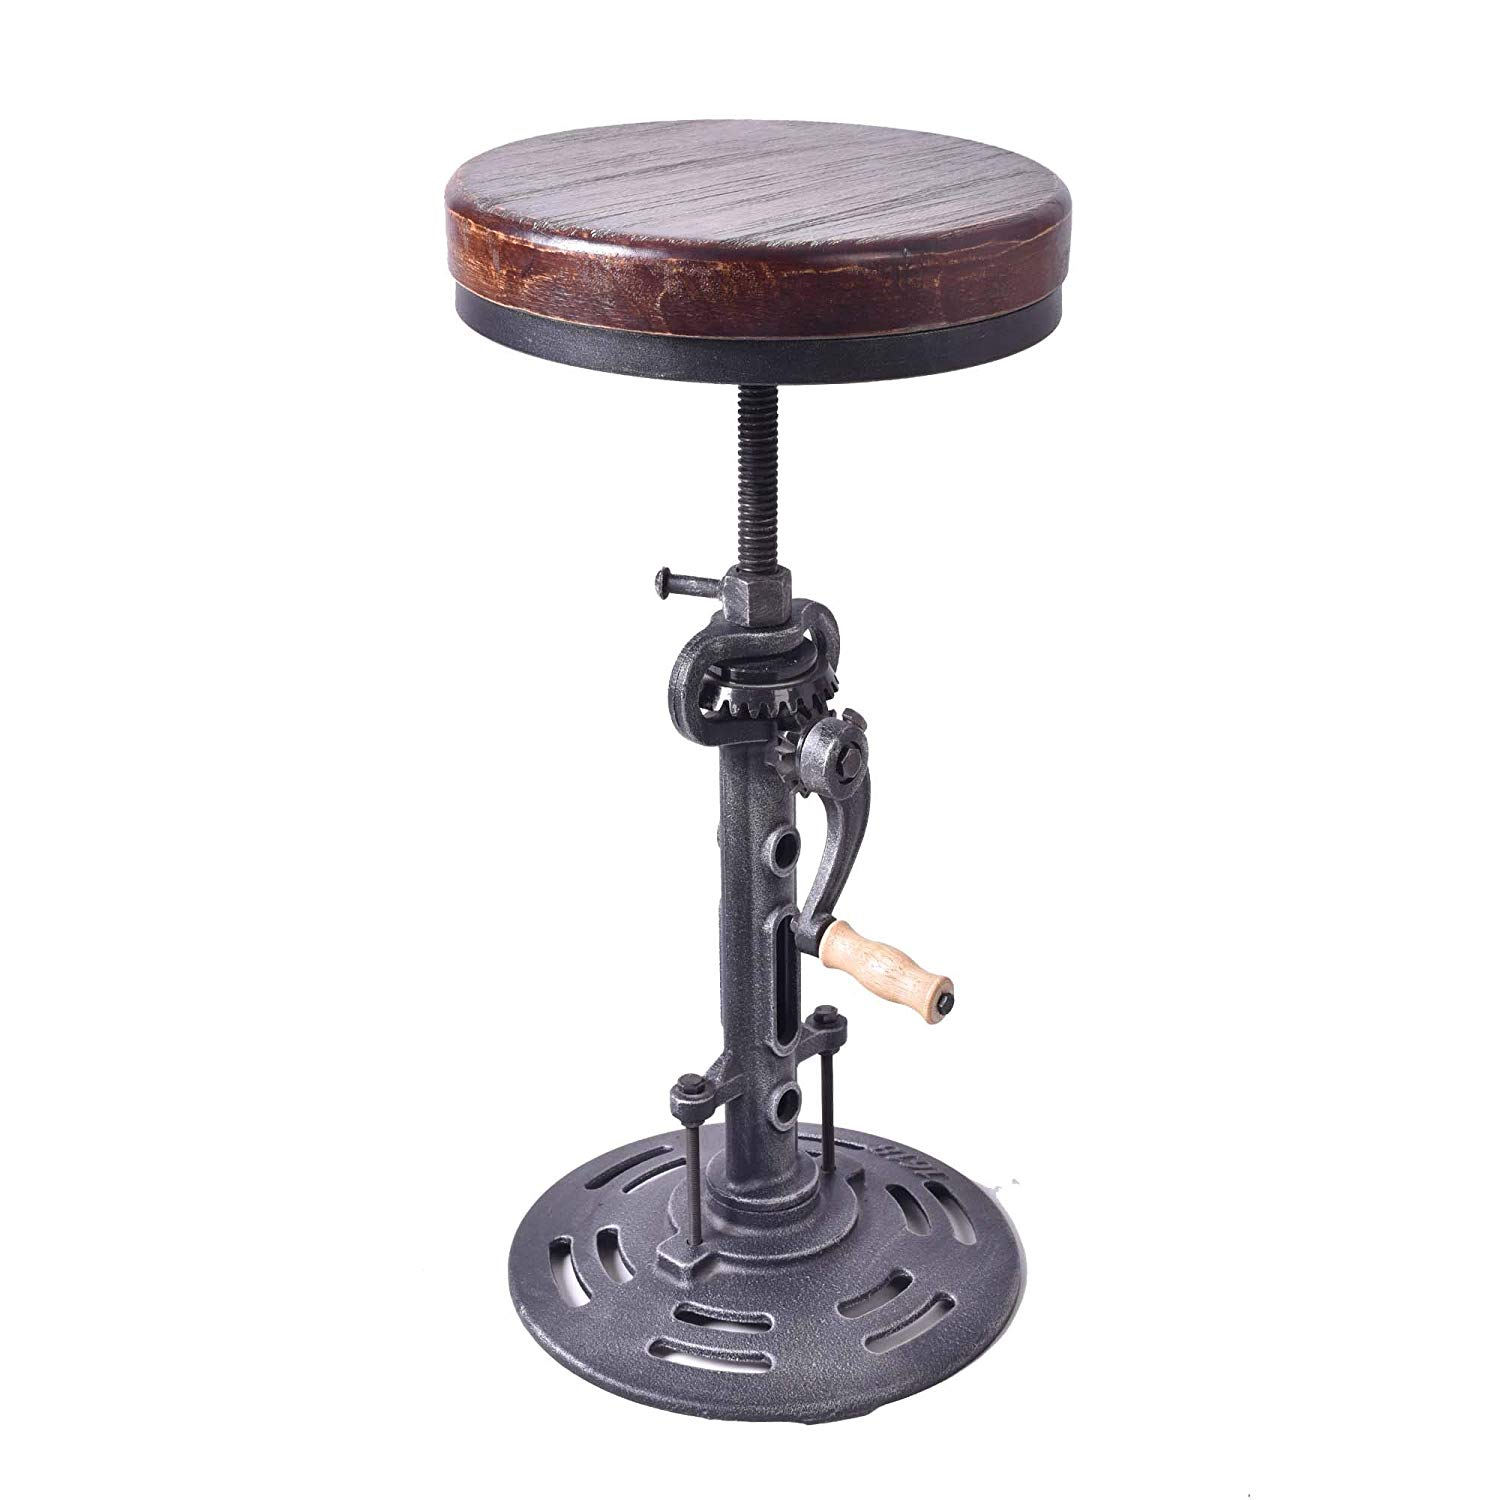 topower american antique industrial diy crank stool cast adjustable height accent table iron base bar design metal chair wood kitchen white farmhouse dining small black nest